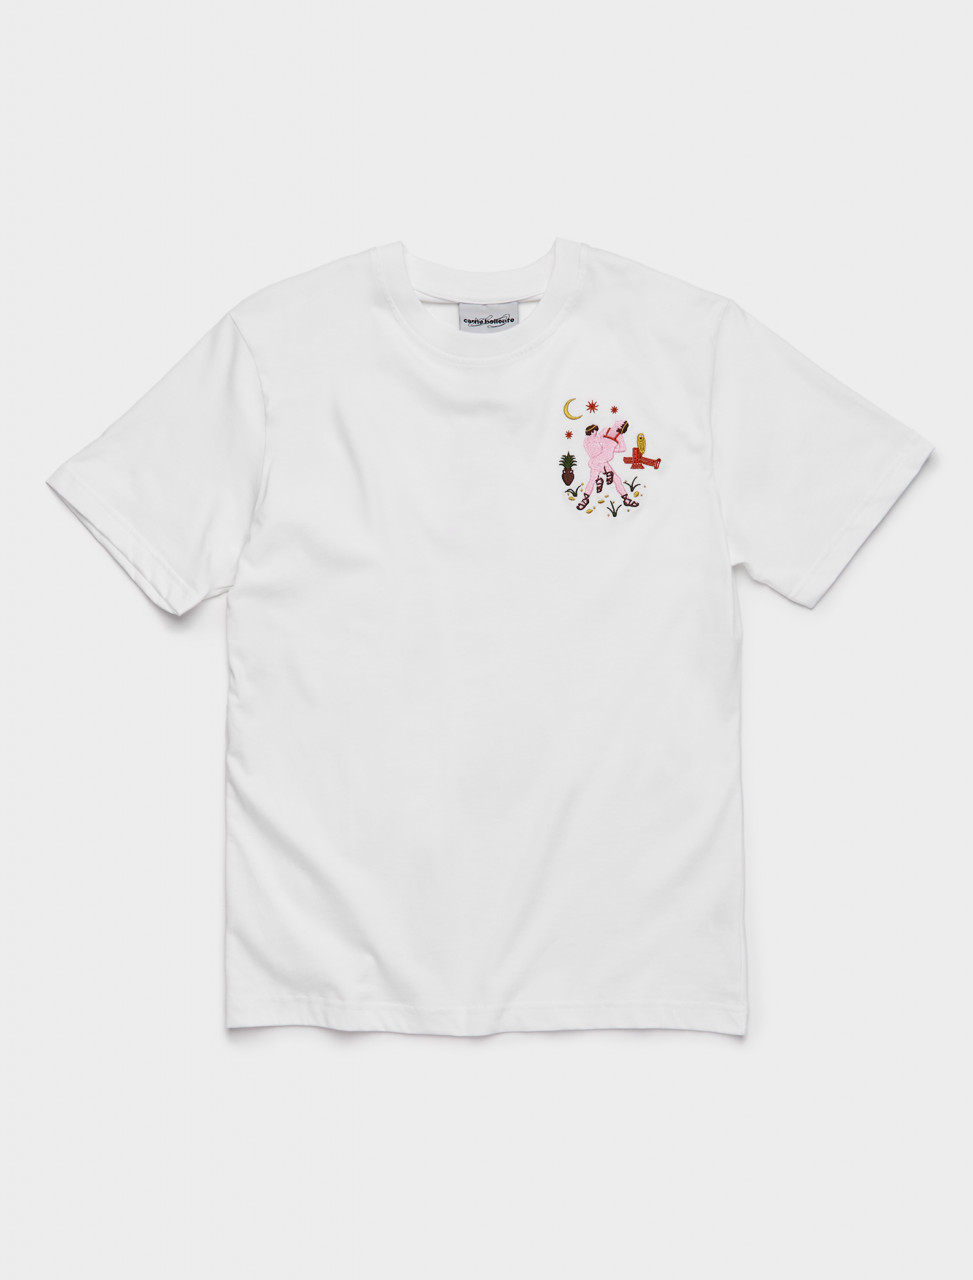 149-AW20TS004W CARNE BOLLENTE J'USE CESAR T-SHIRT WHITE